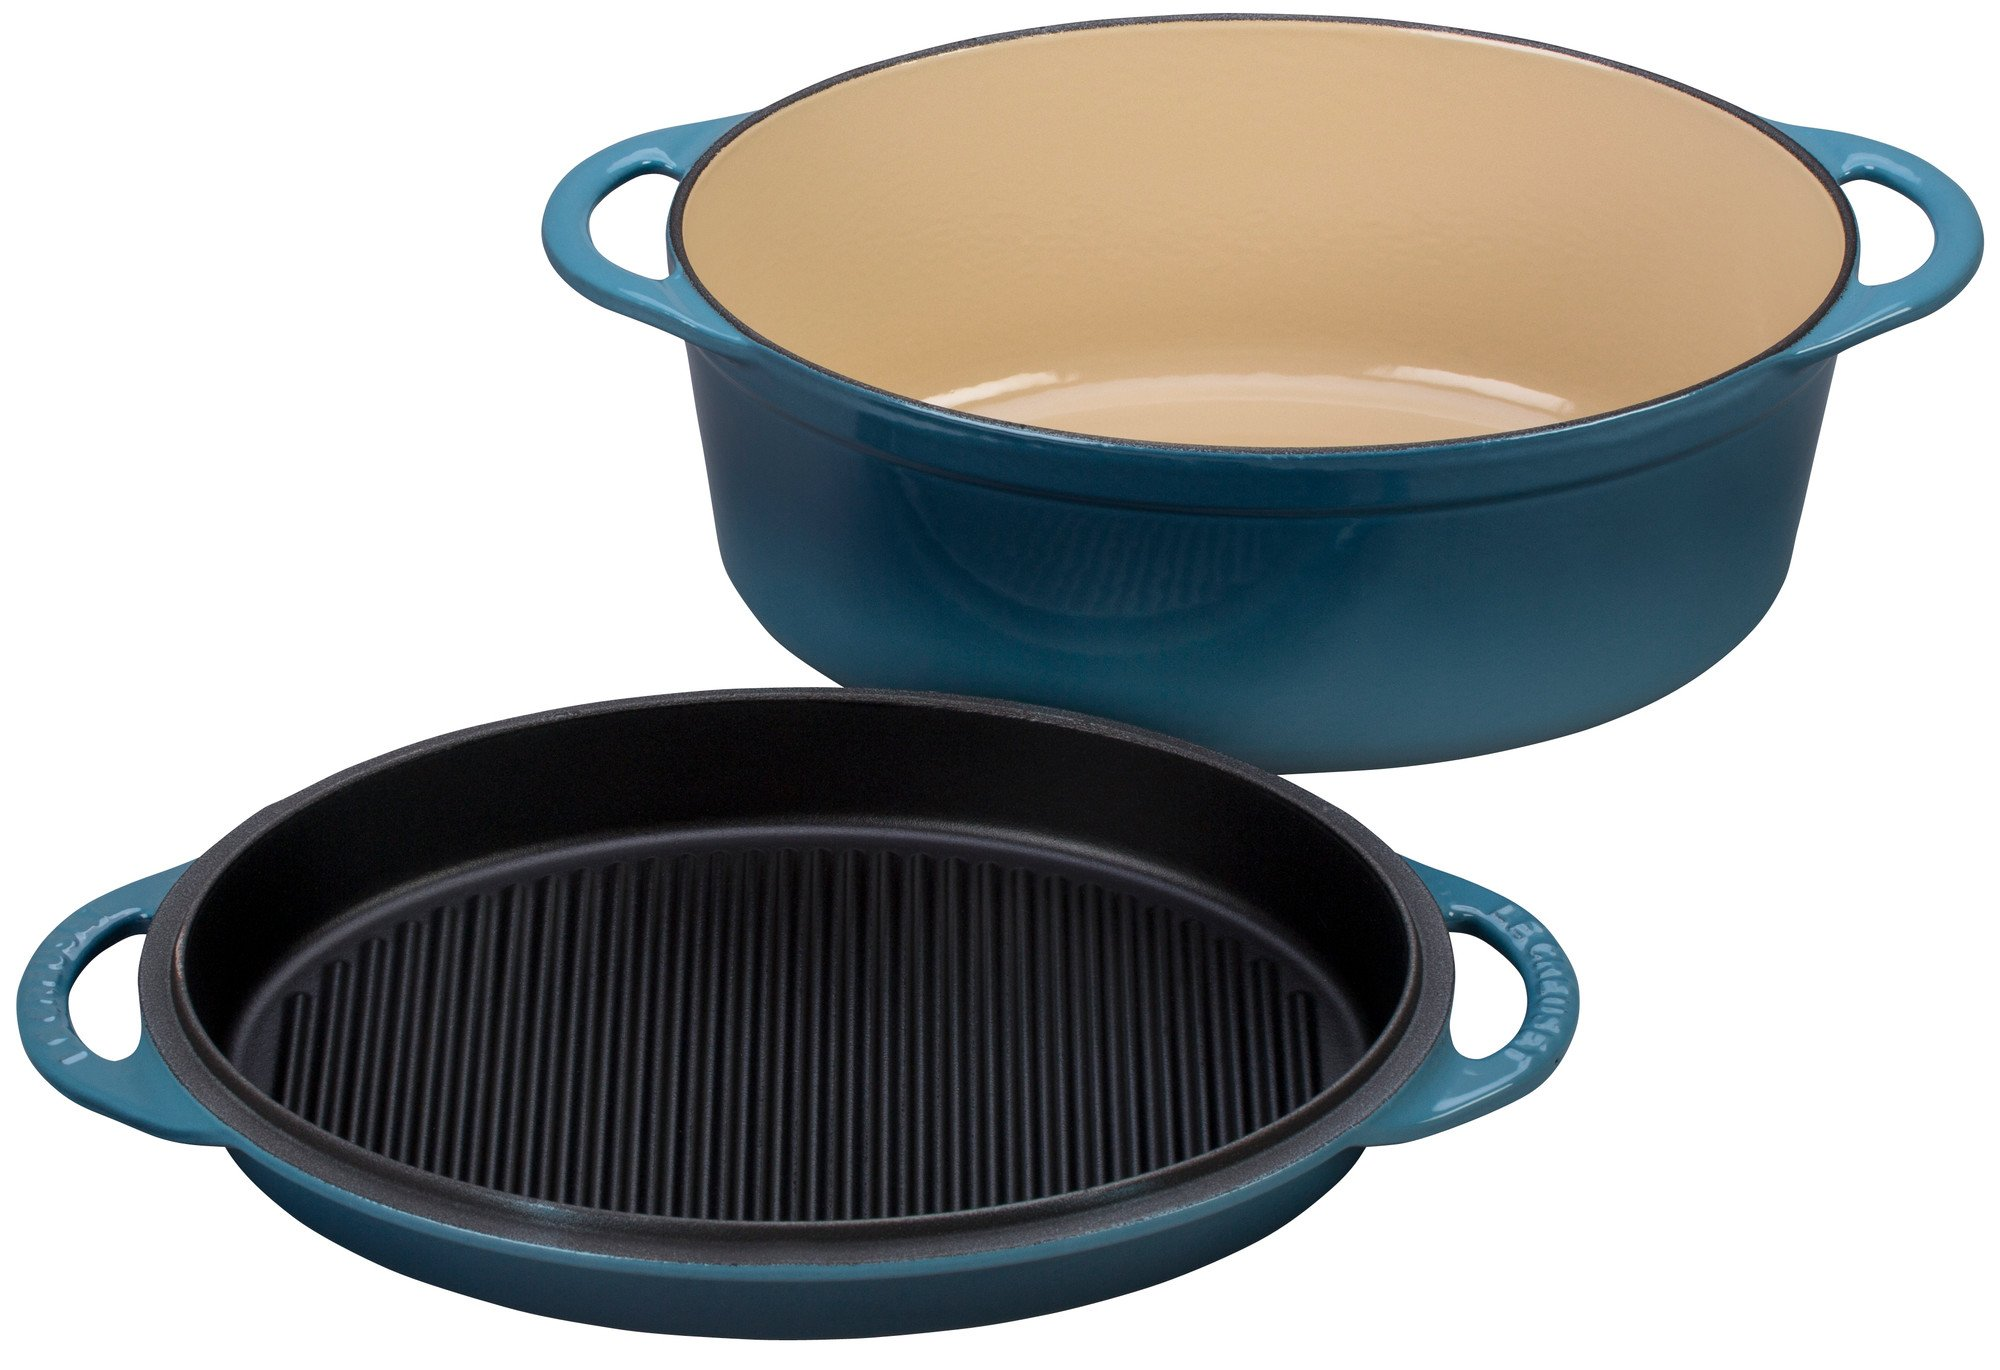 Le Creuset Cast Iron Oval Oven with Reversible Grill Pan Lid, 4 3/4 quart, Marine